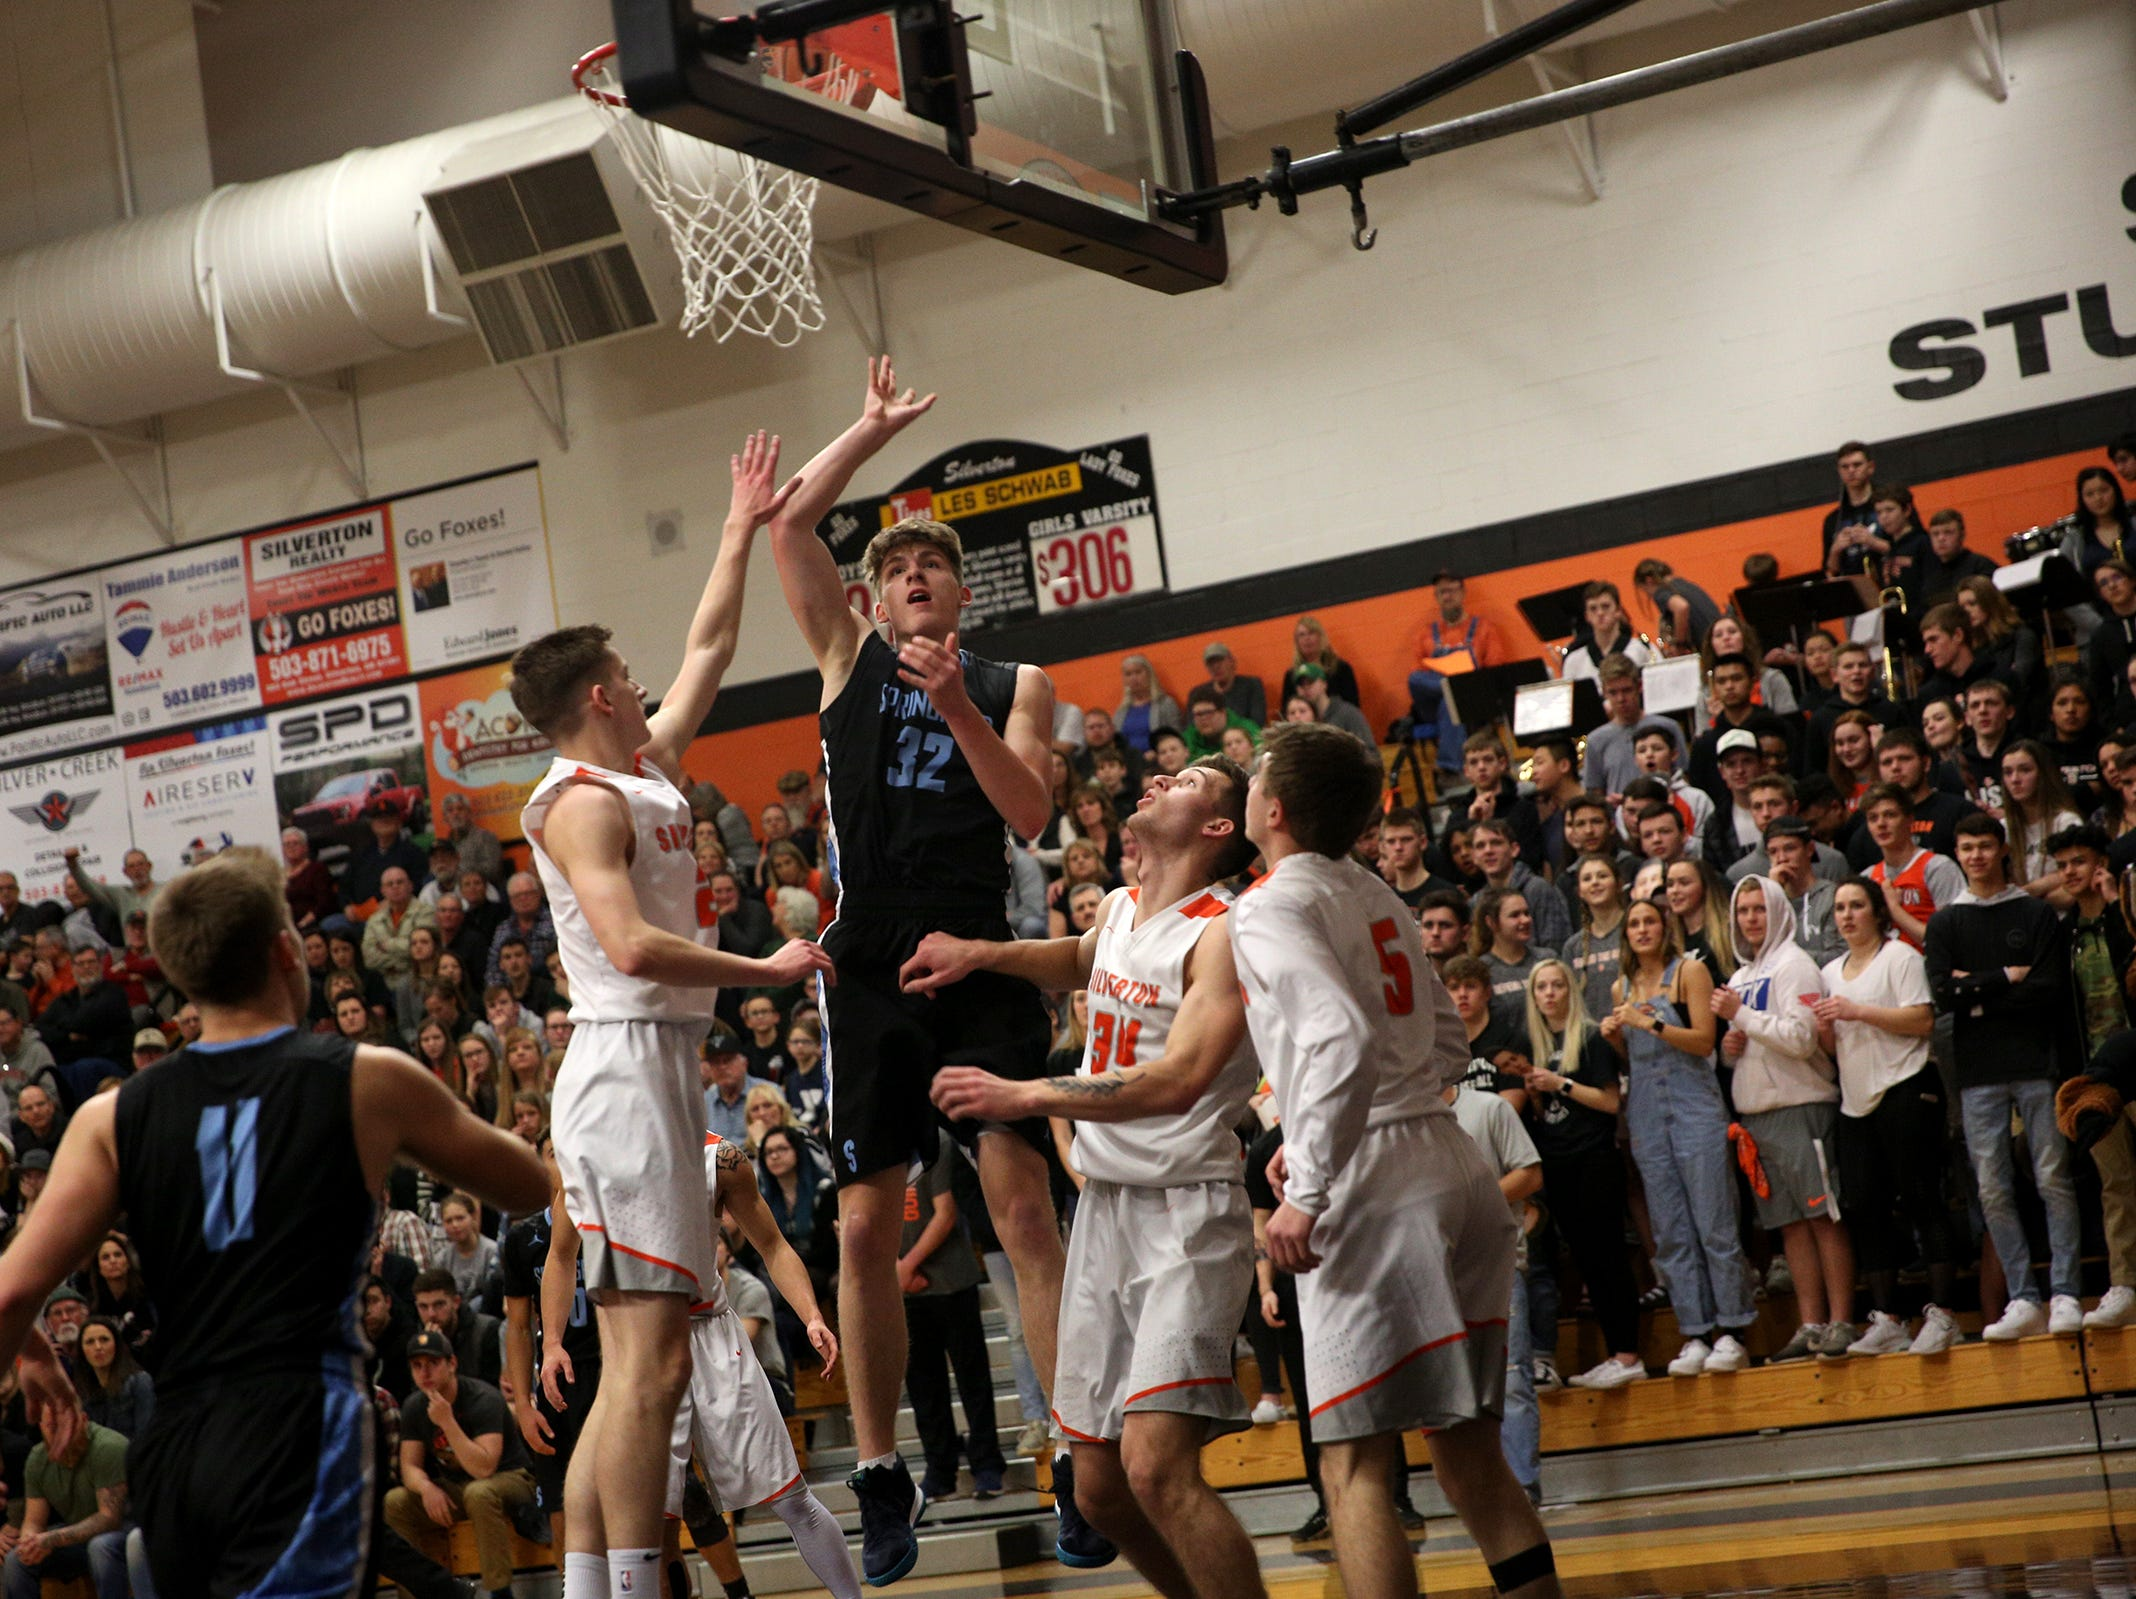 Springfield's Zach Brown (32) goes up for a shot during the Silverton vs. Springfield boys basketball OSAA state playoffs game at Silverton High School in Silverton on Saturday, March 2, 2019.